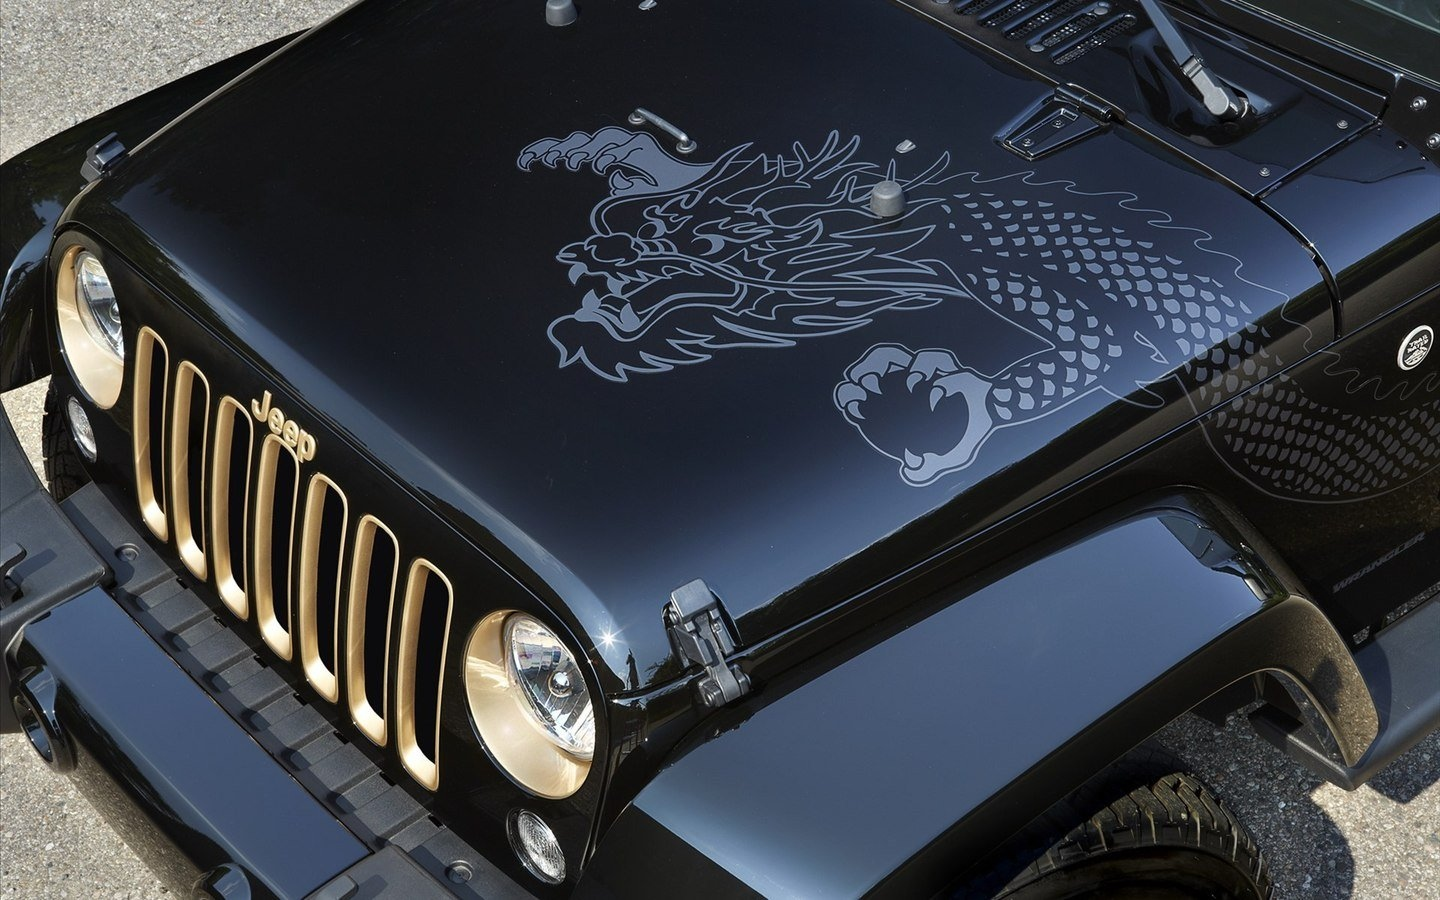 jeep chinese dragon edition hd wallpaper 49519 - automotive